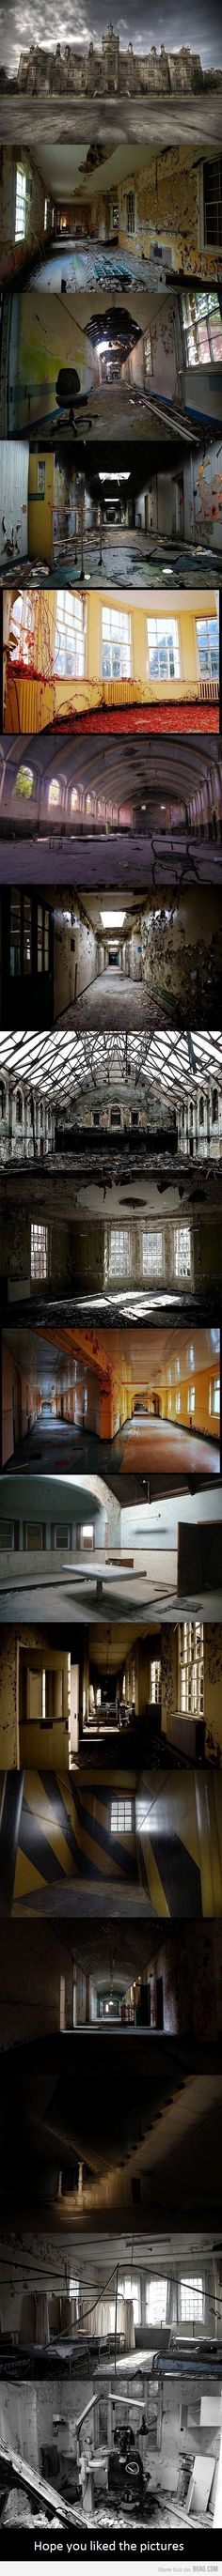 Abandoned mental asylum: Denbigh Asylum, Dinbych, Wales.  Built mid 1840s, closed 1995.